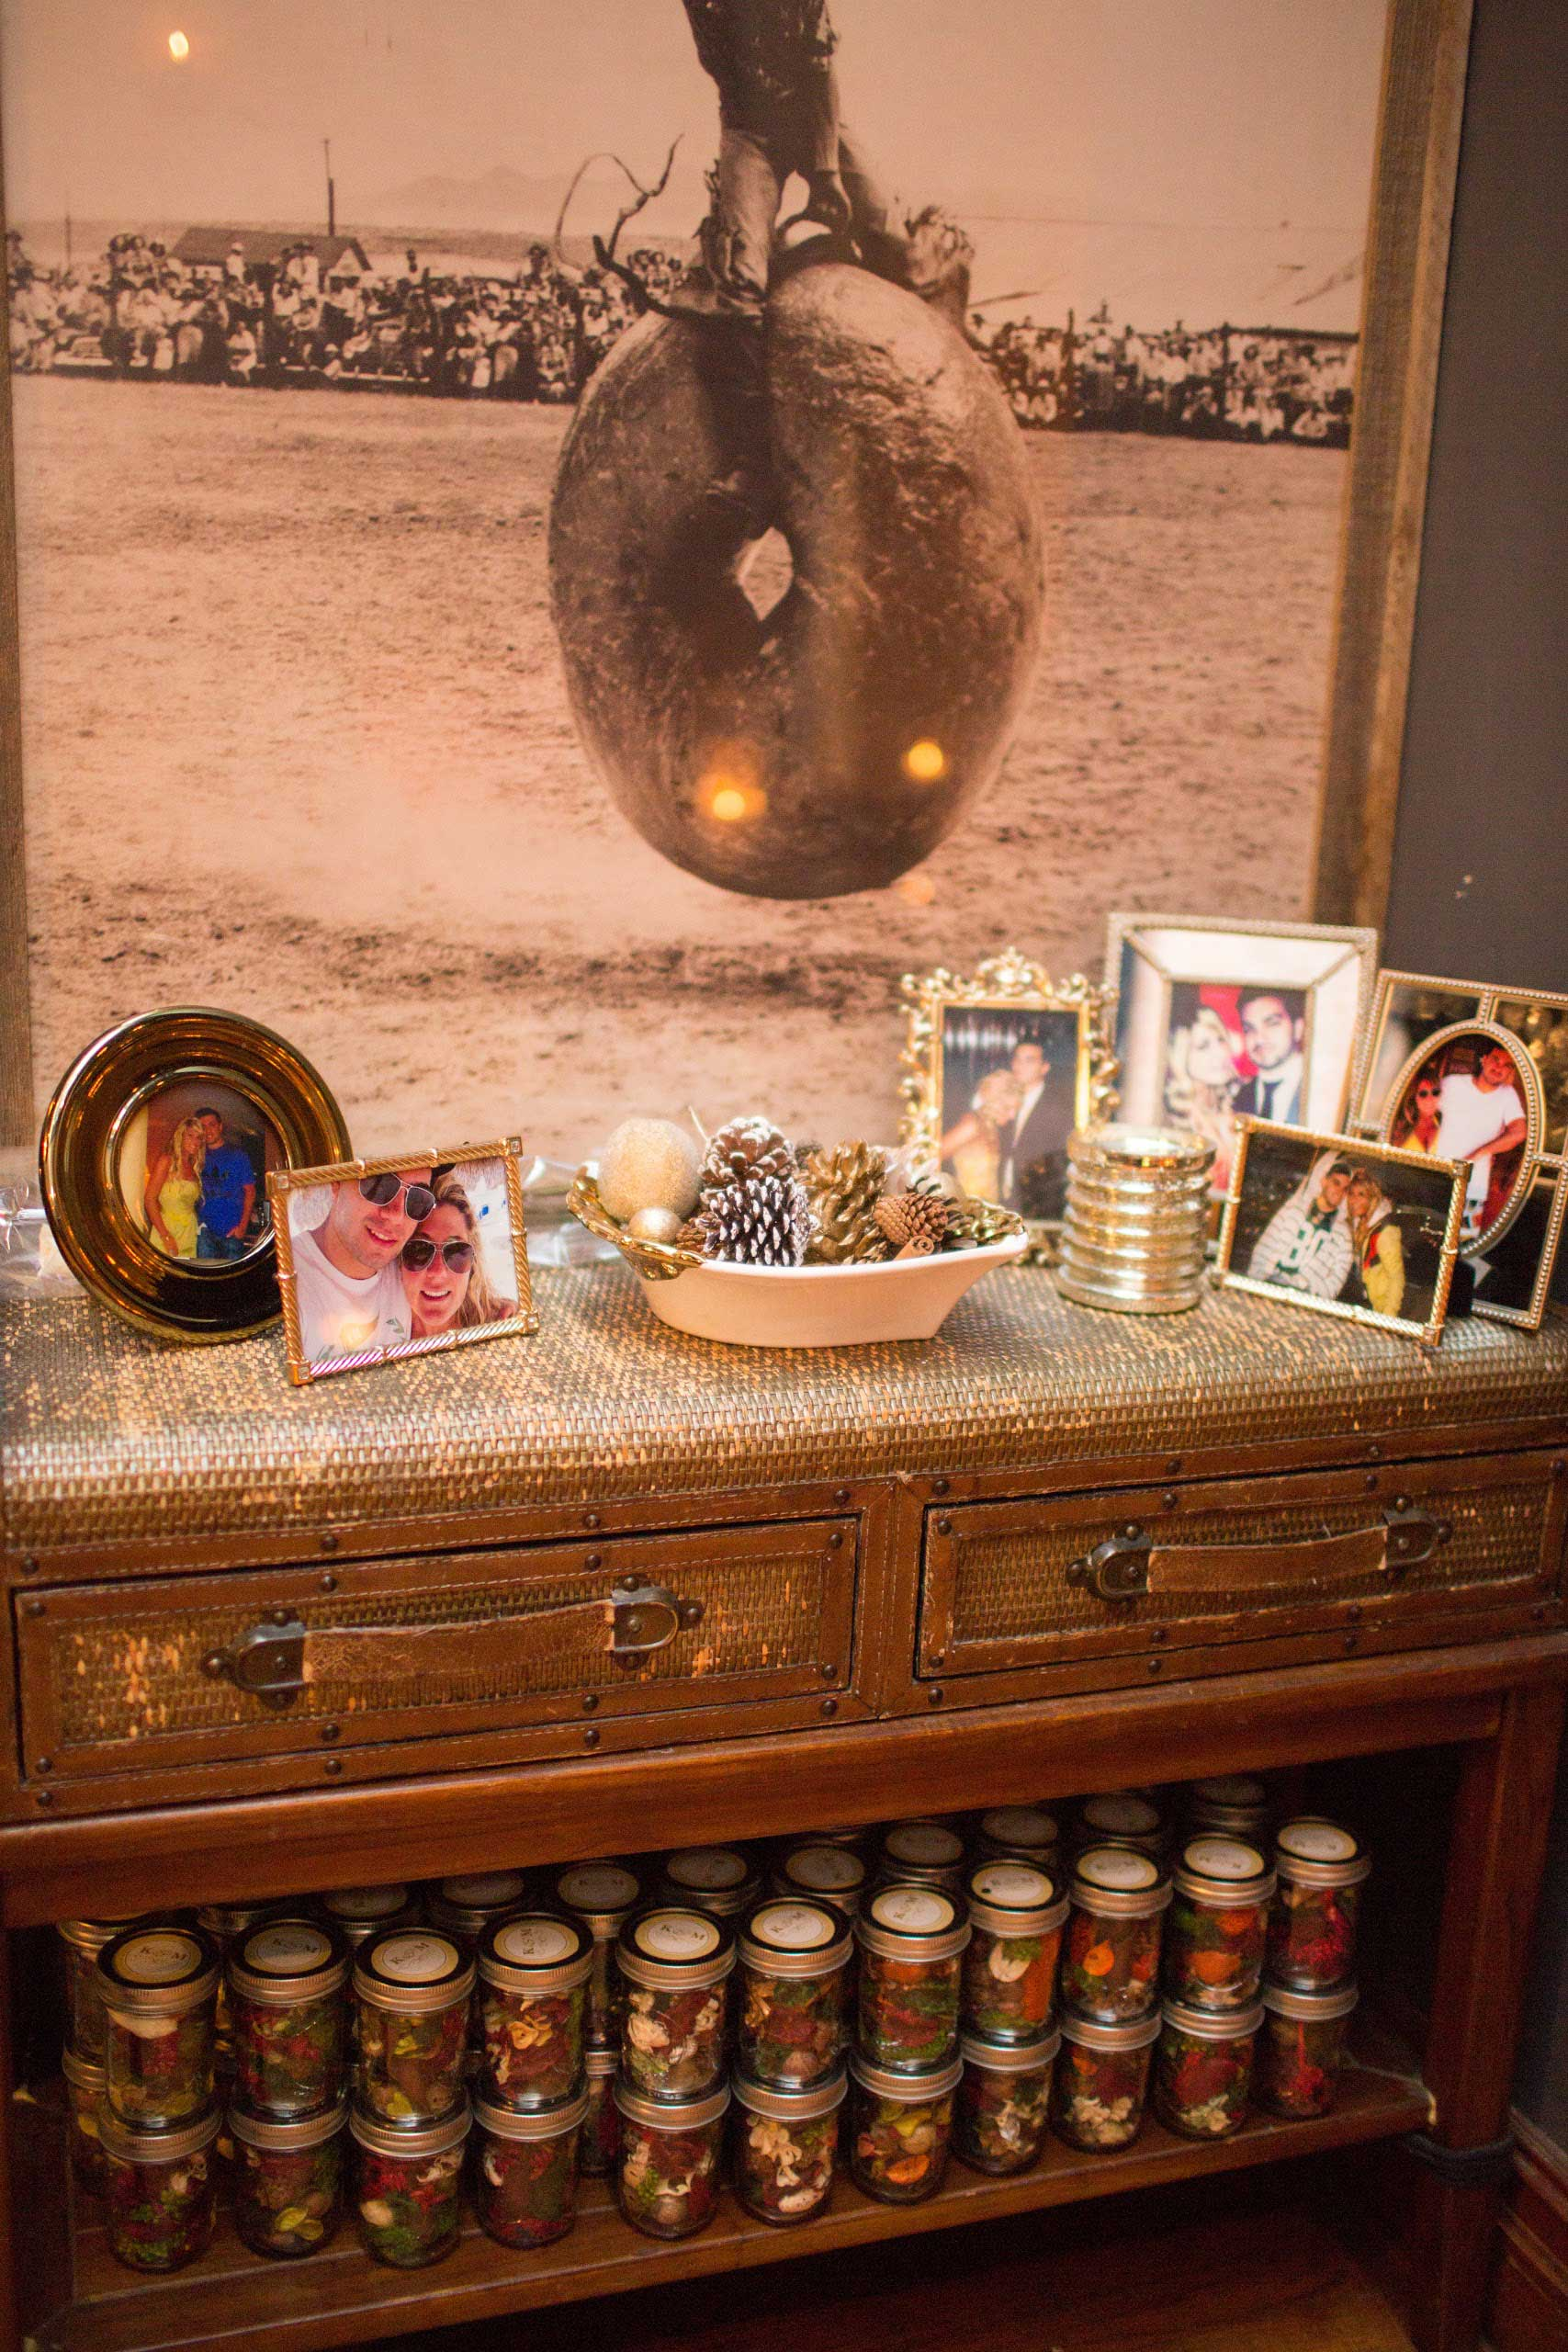 Rustic venue for engagement party with frames of couple and pot pourri favors